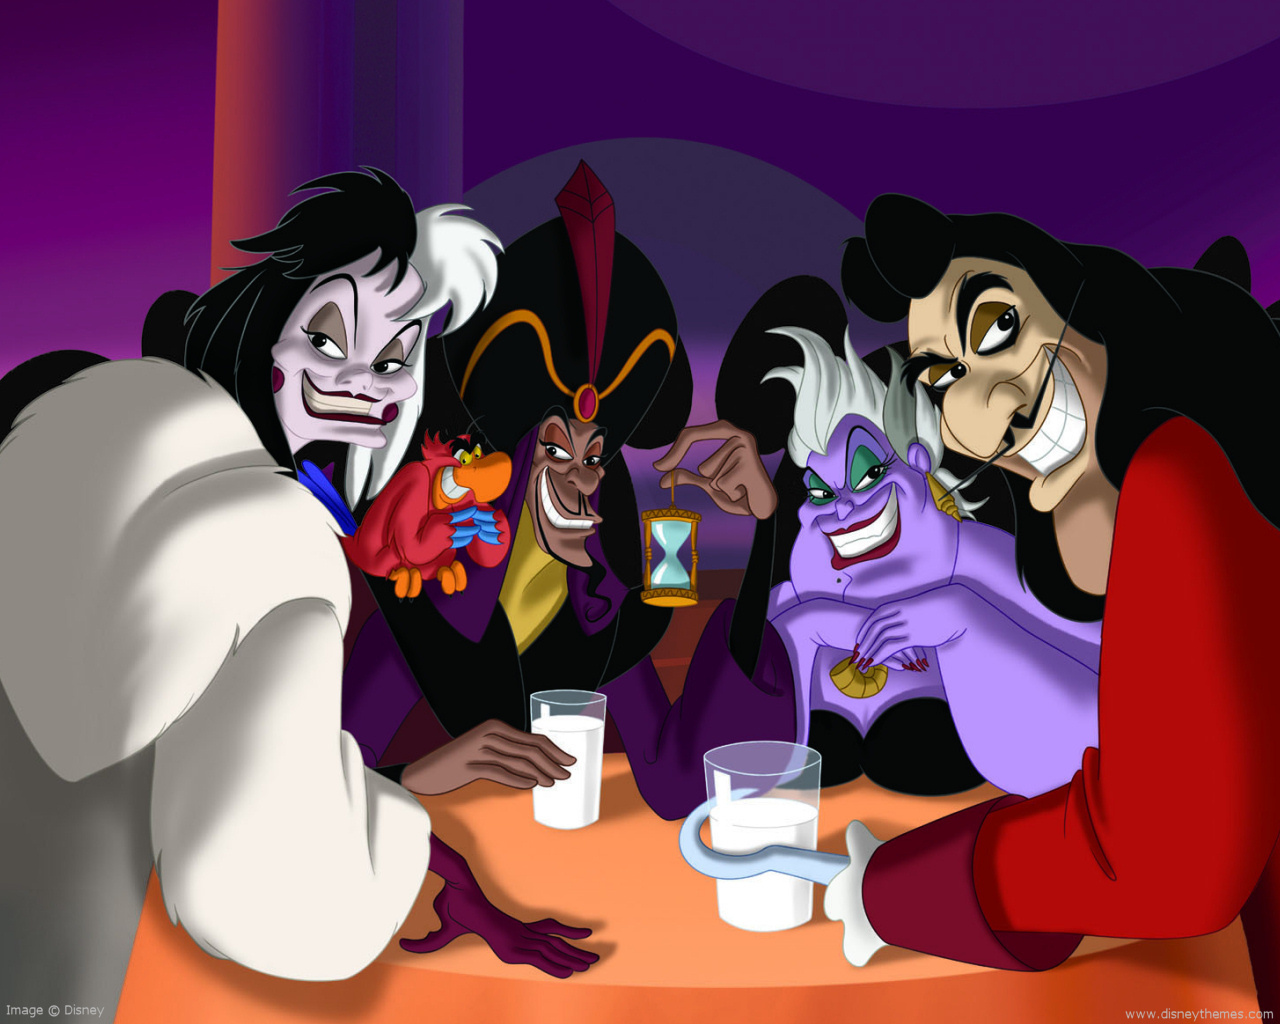 AuthorQuest: Analyzing the Disney Villains